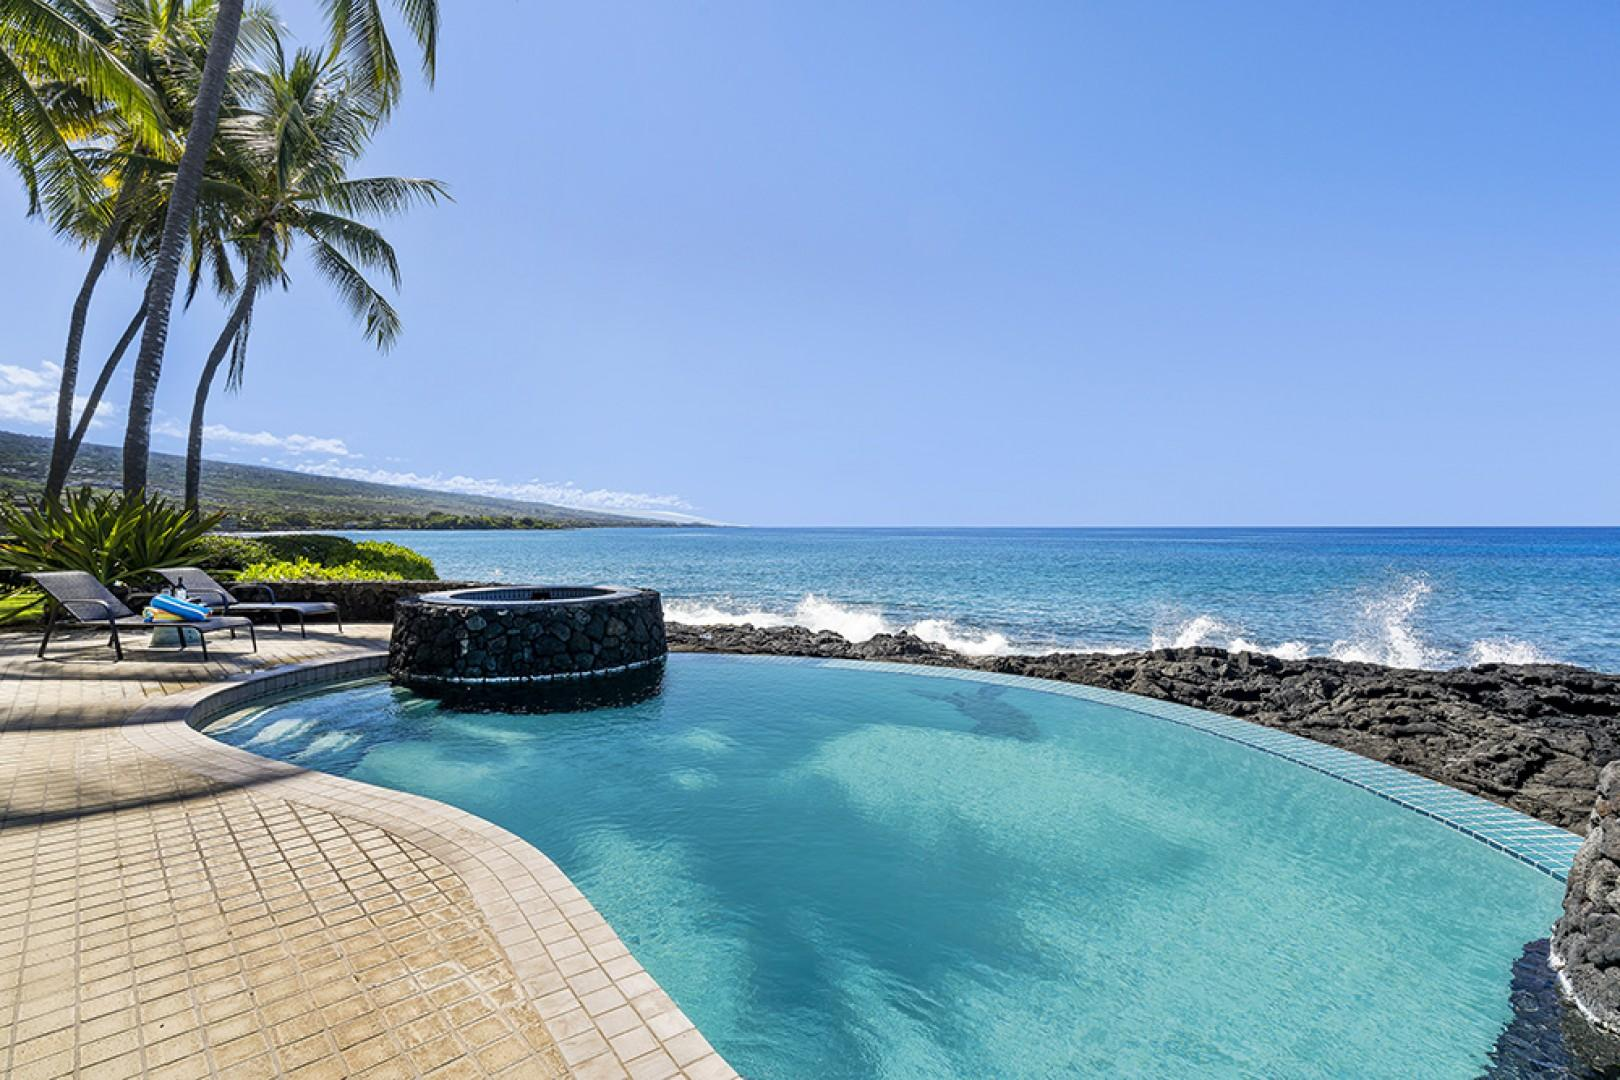 Plenty of space along the Oceans edge on the spacious Lanai